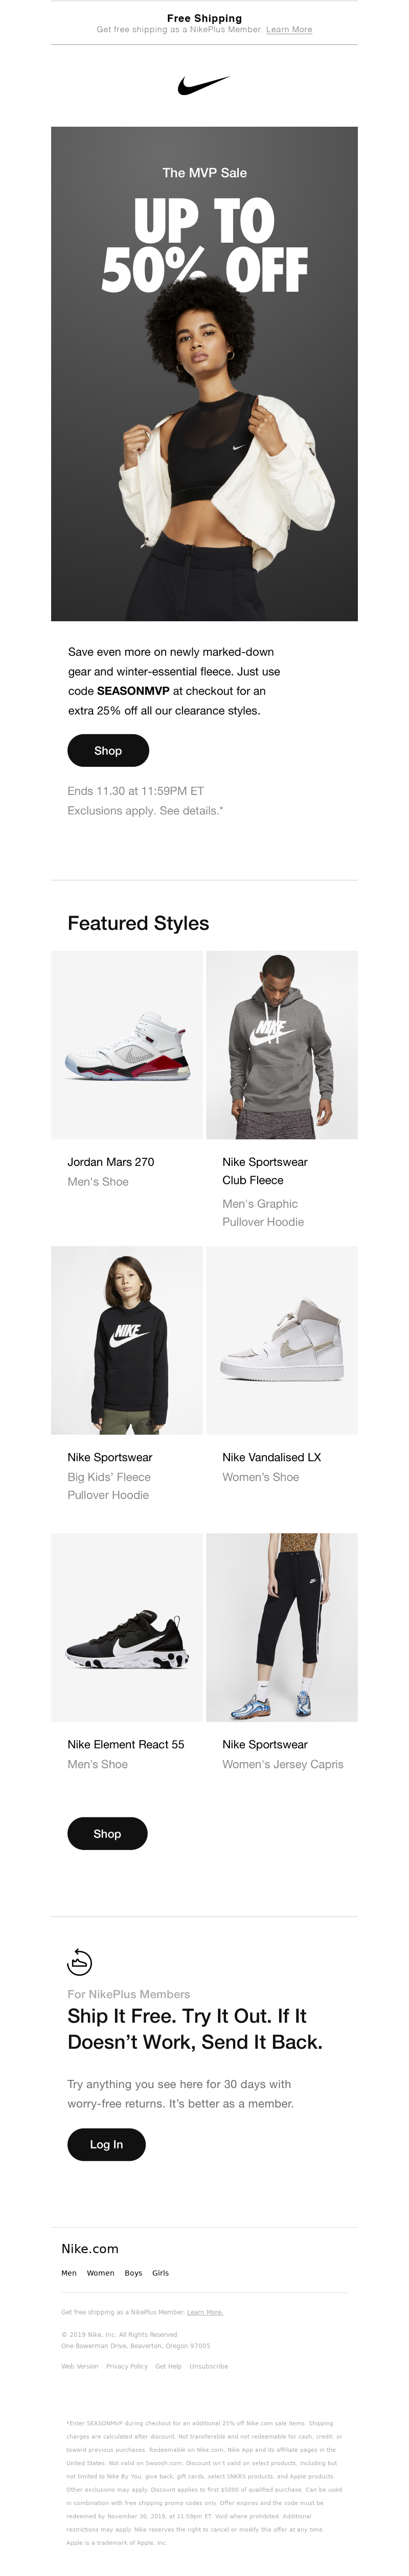 Nike Email Marketing Examples